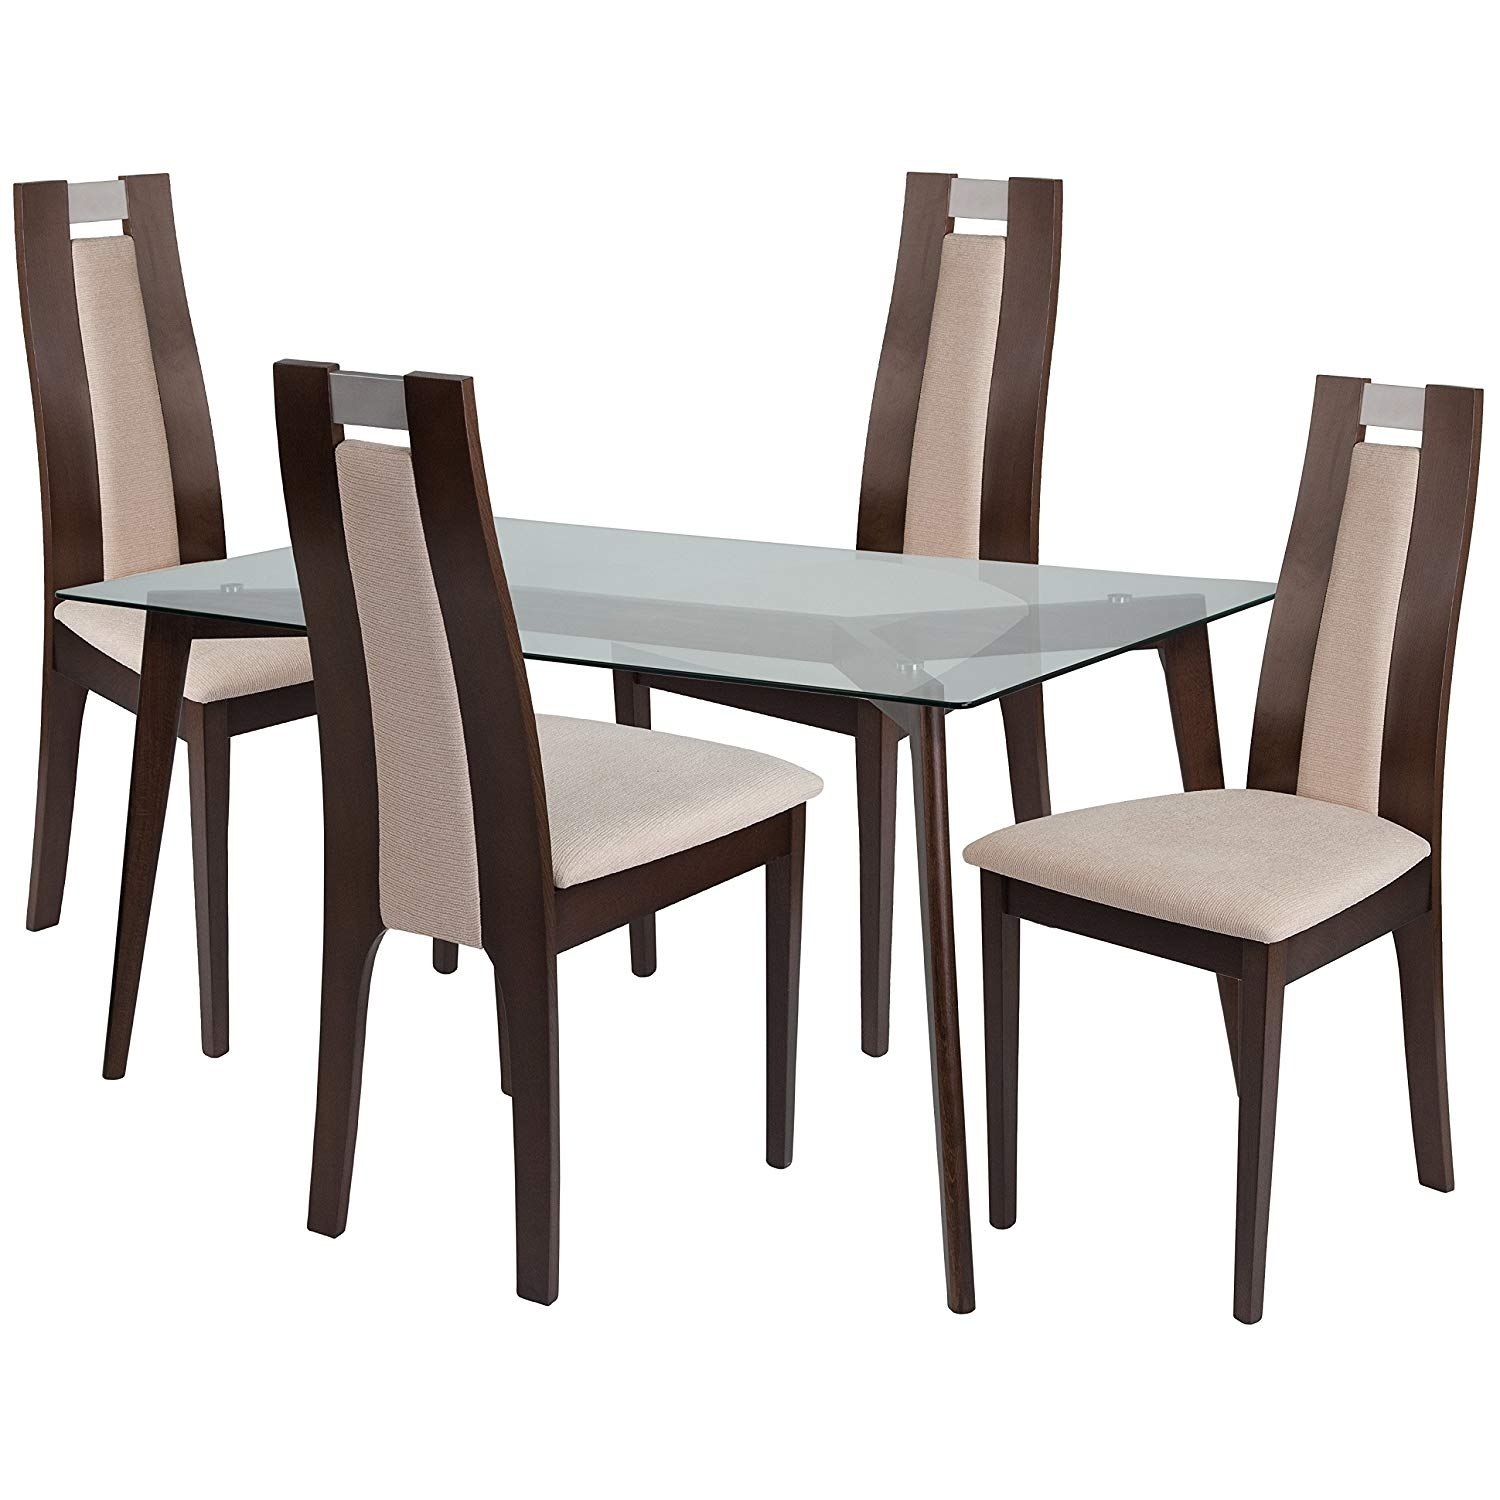 Cheap Glass Dining Room Sets: 20 Photos Patterson 6 Piece Dining Sets